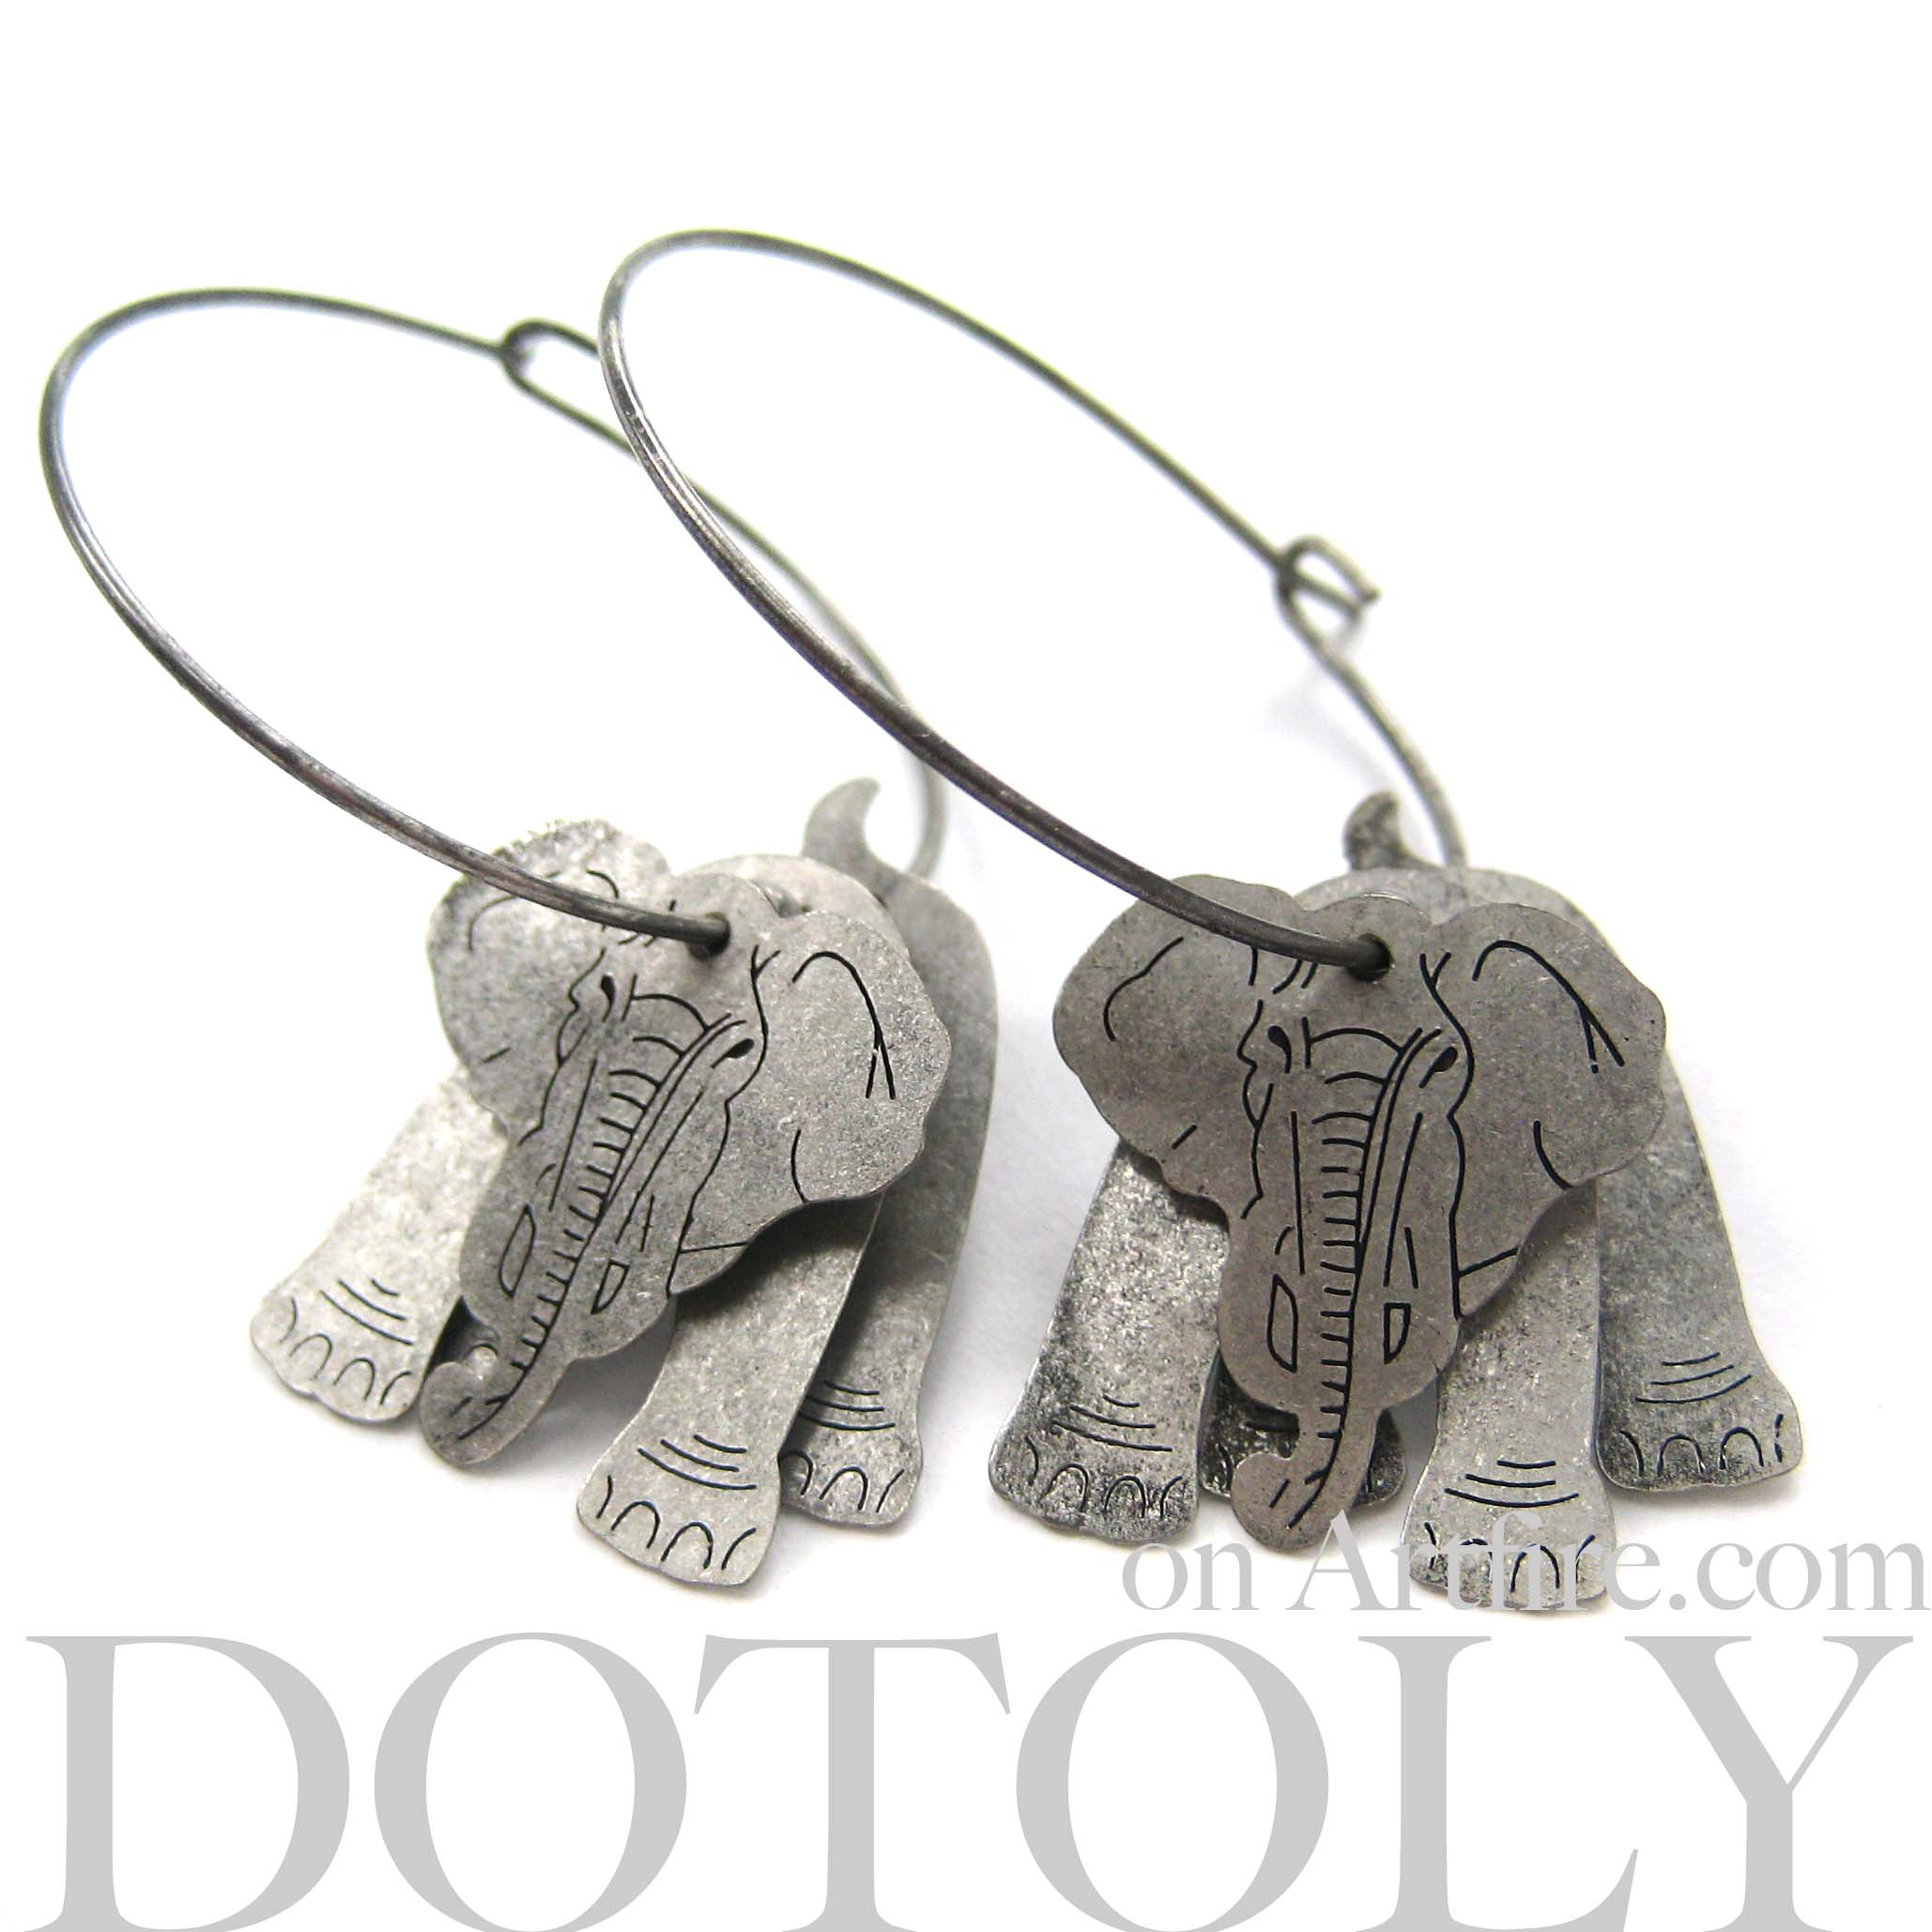 voegtlin sterling marketplace shop leslie new elephant accessories silver product liftuplift earrings owner